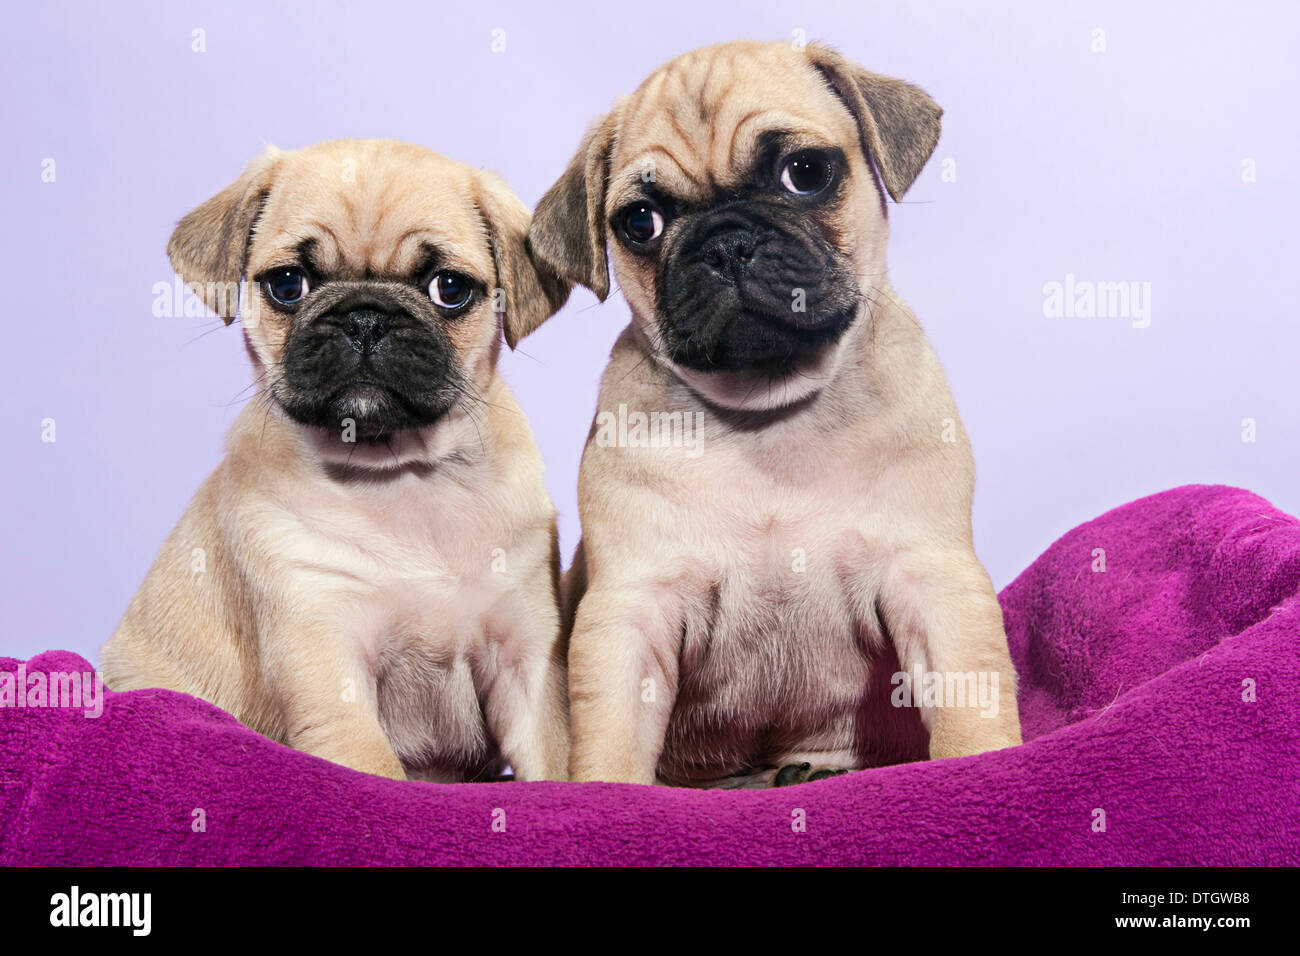 Two Pugs, puppies - Stock Image